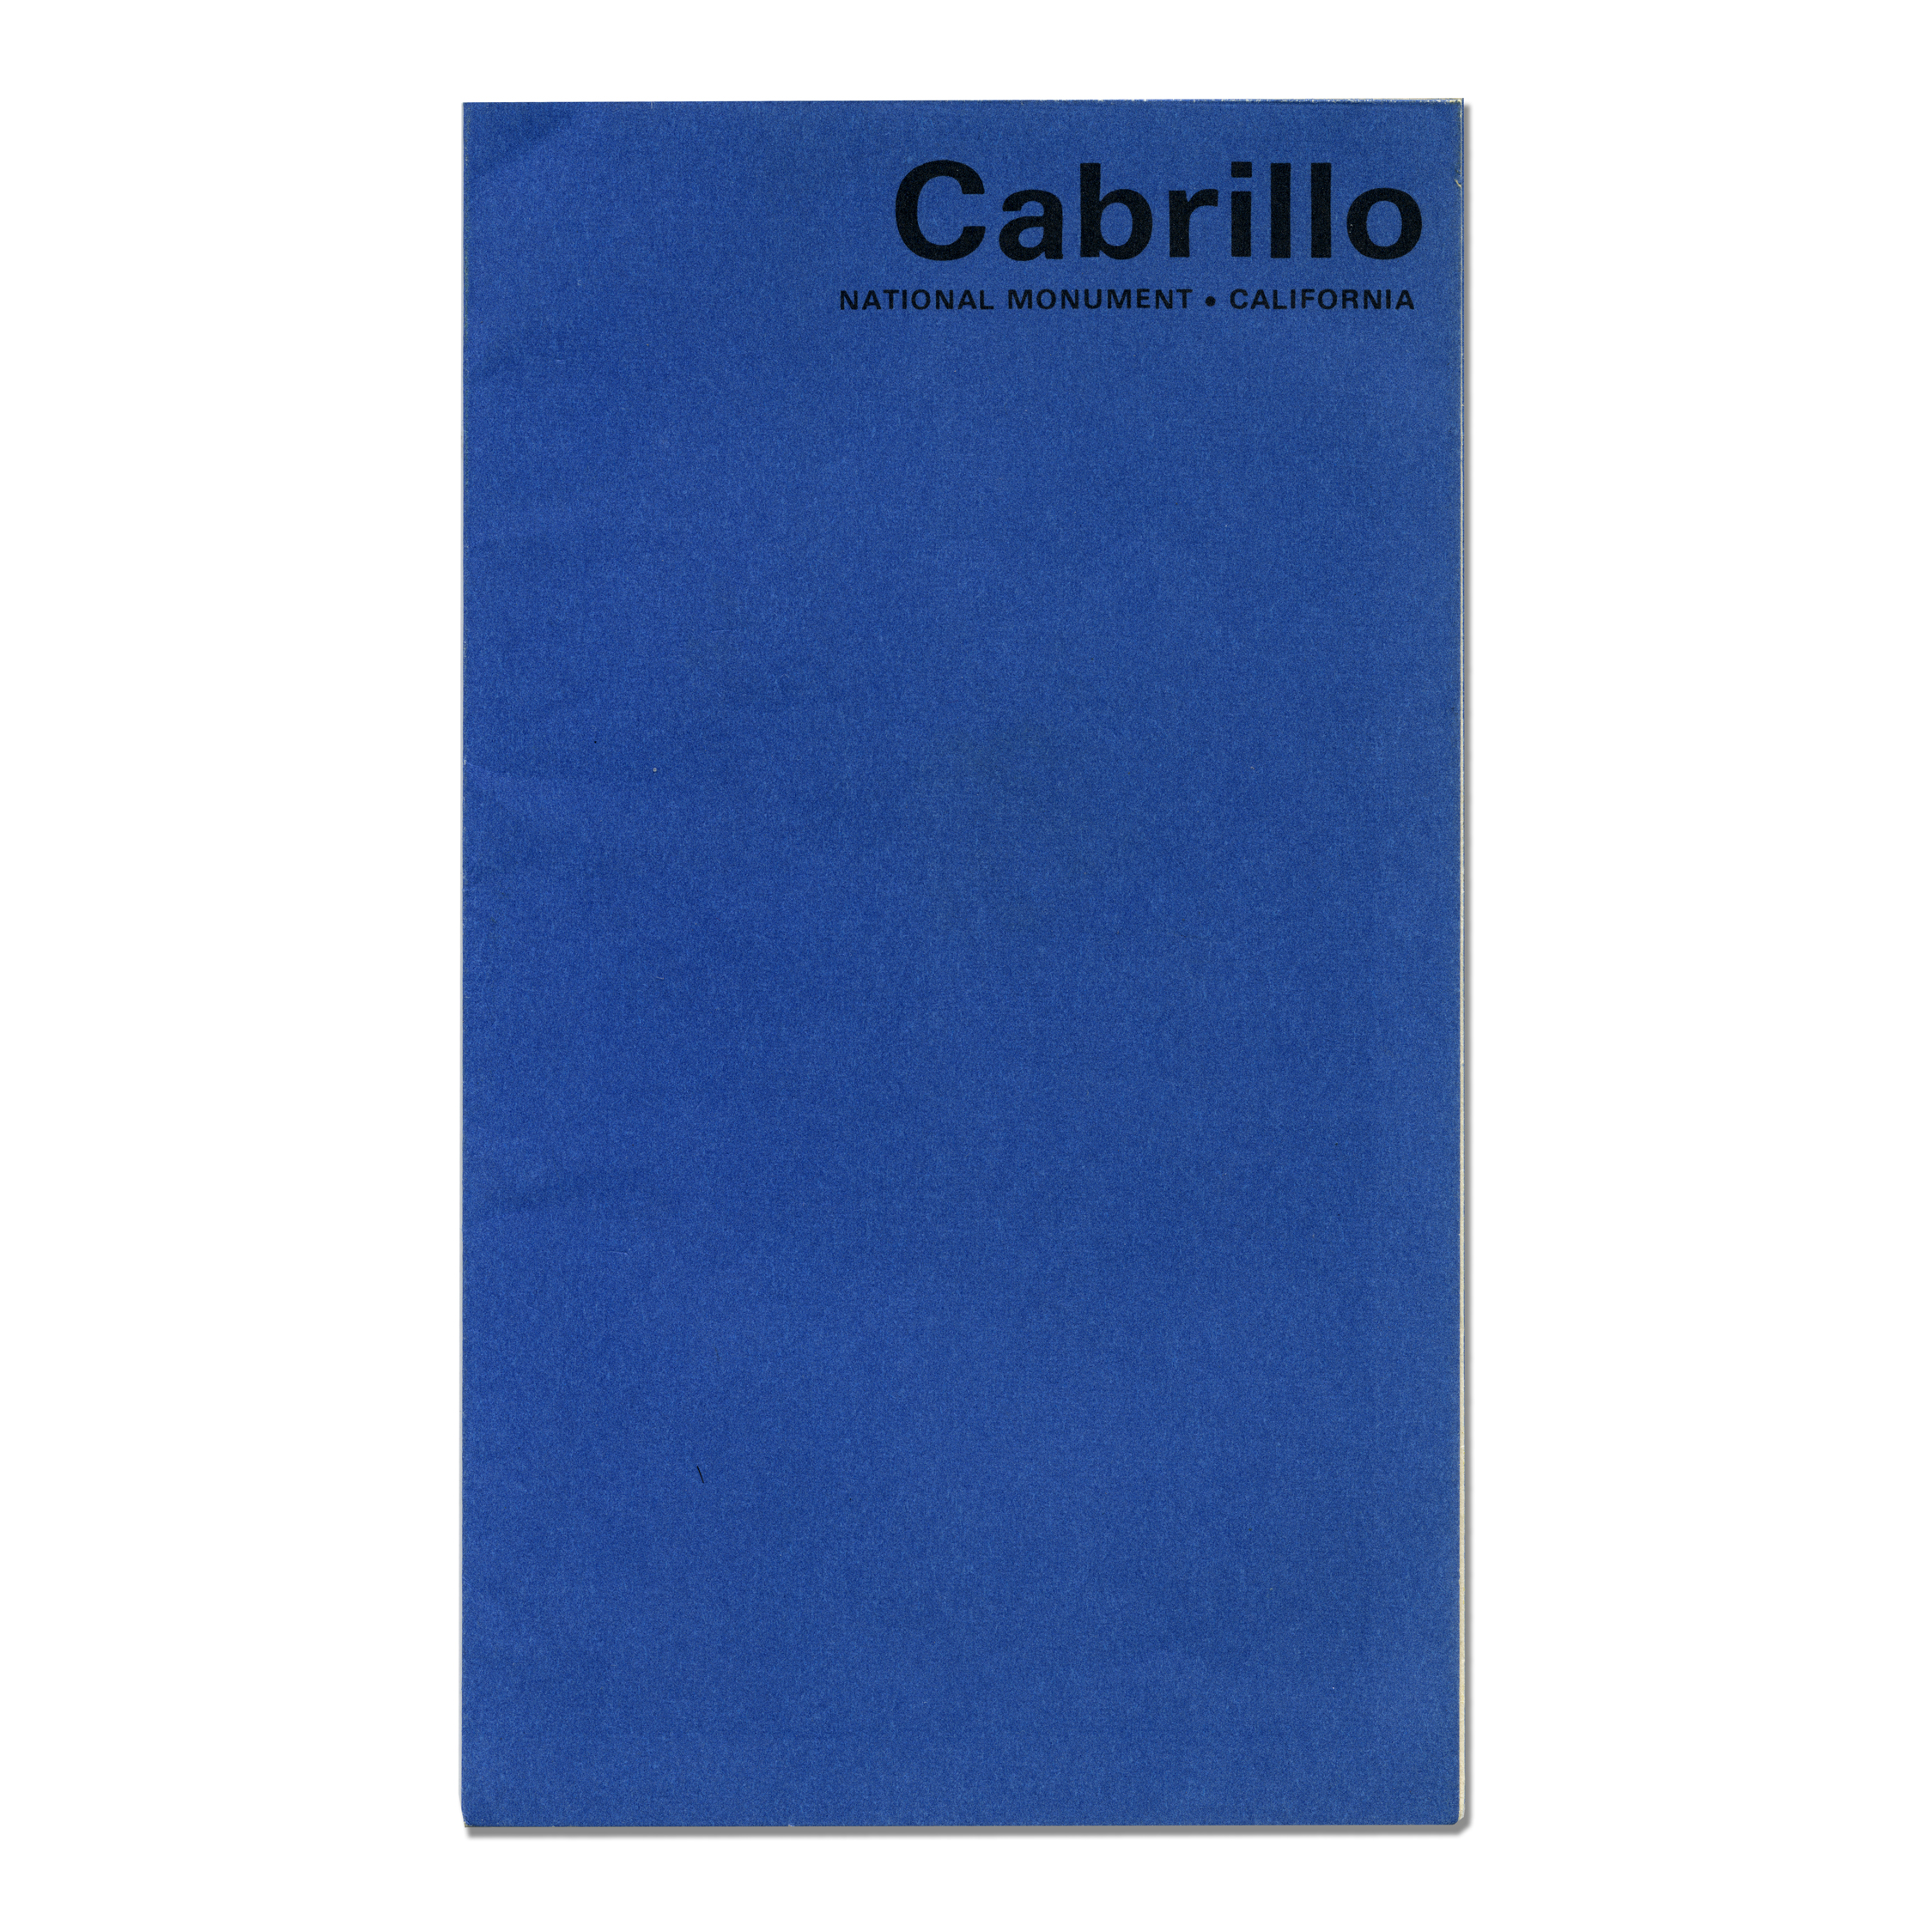 1970_cabrillo_national_monument_brochure.jpg